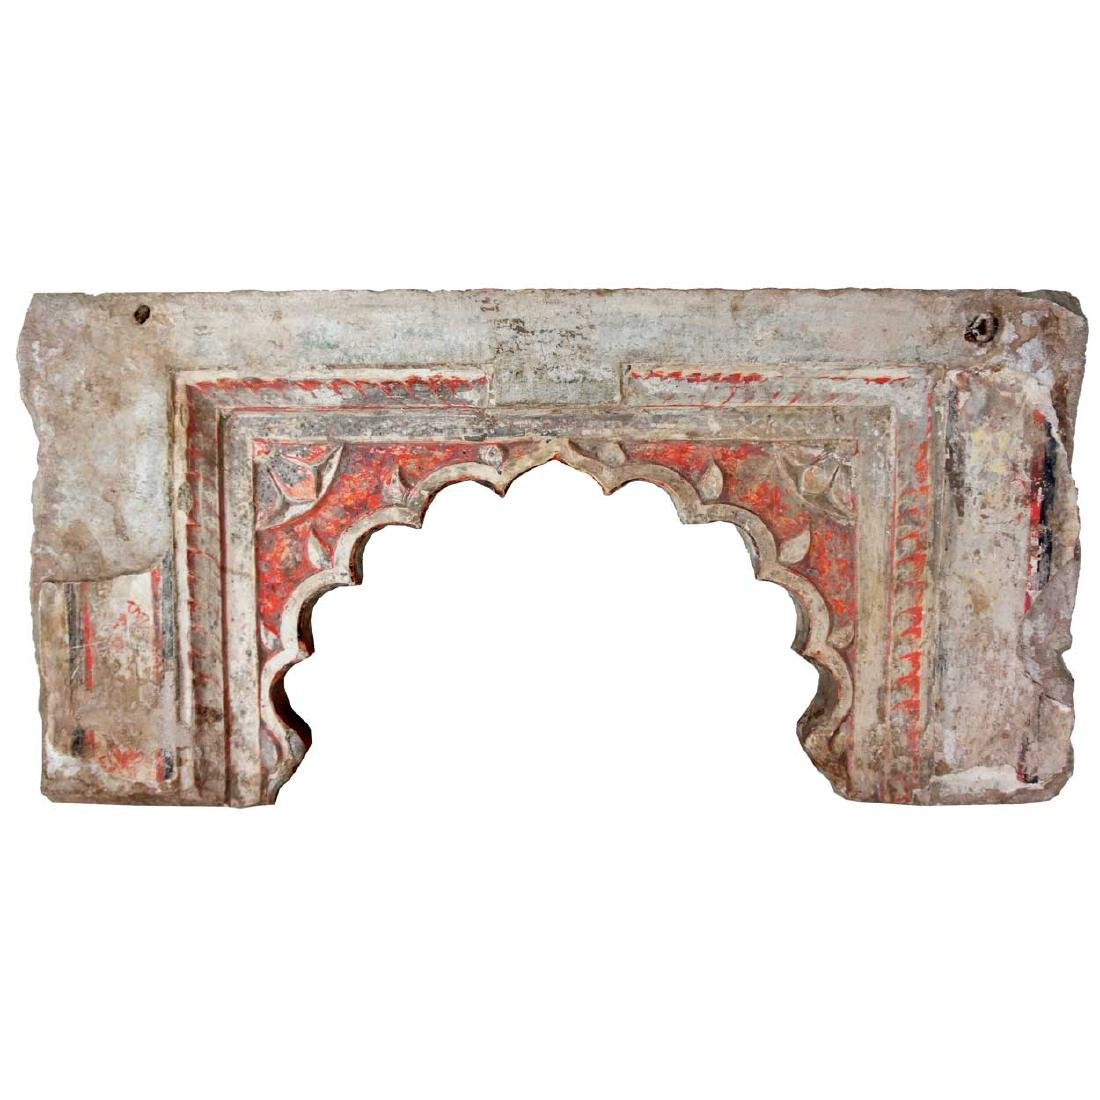 Indian Painted Limestone Architectural Arch